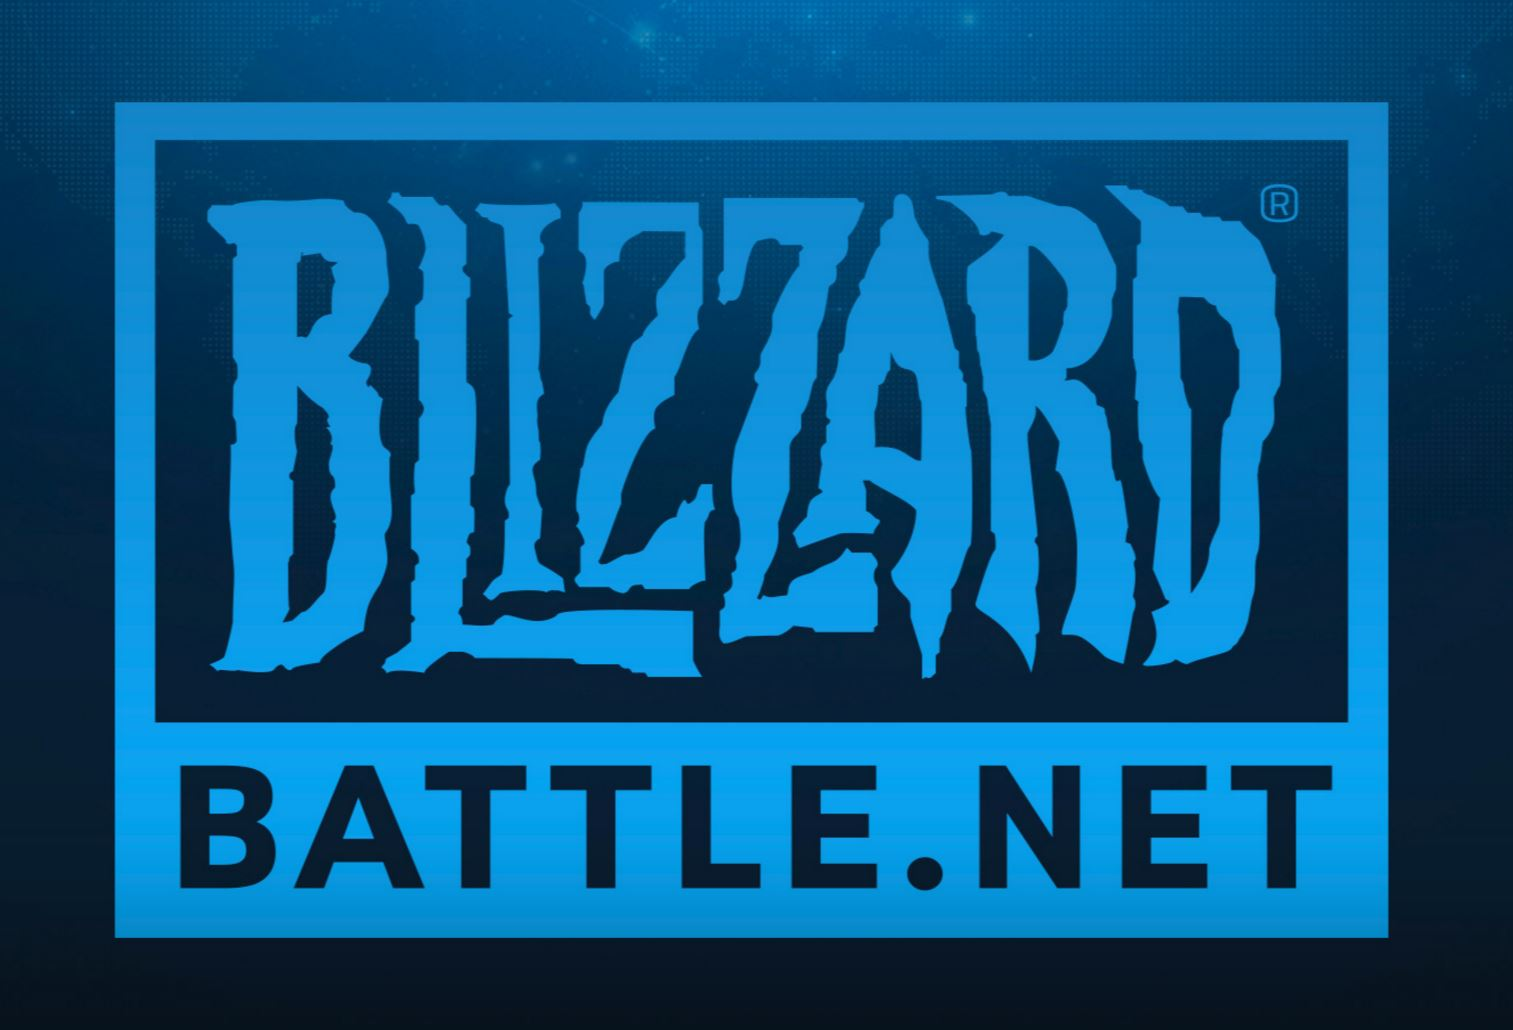 Blizzard sees the light, brings back the Battle.net name